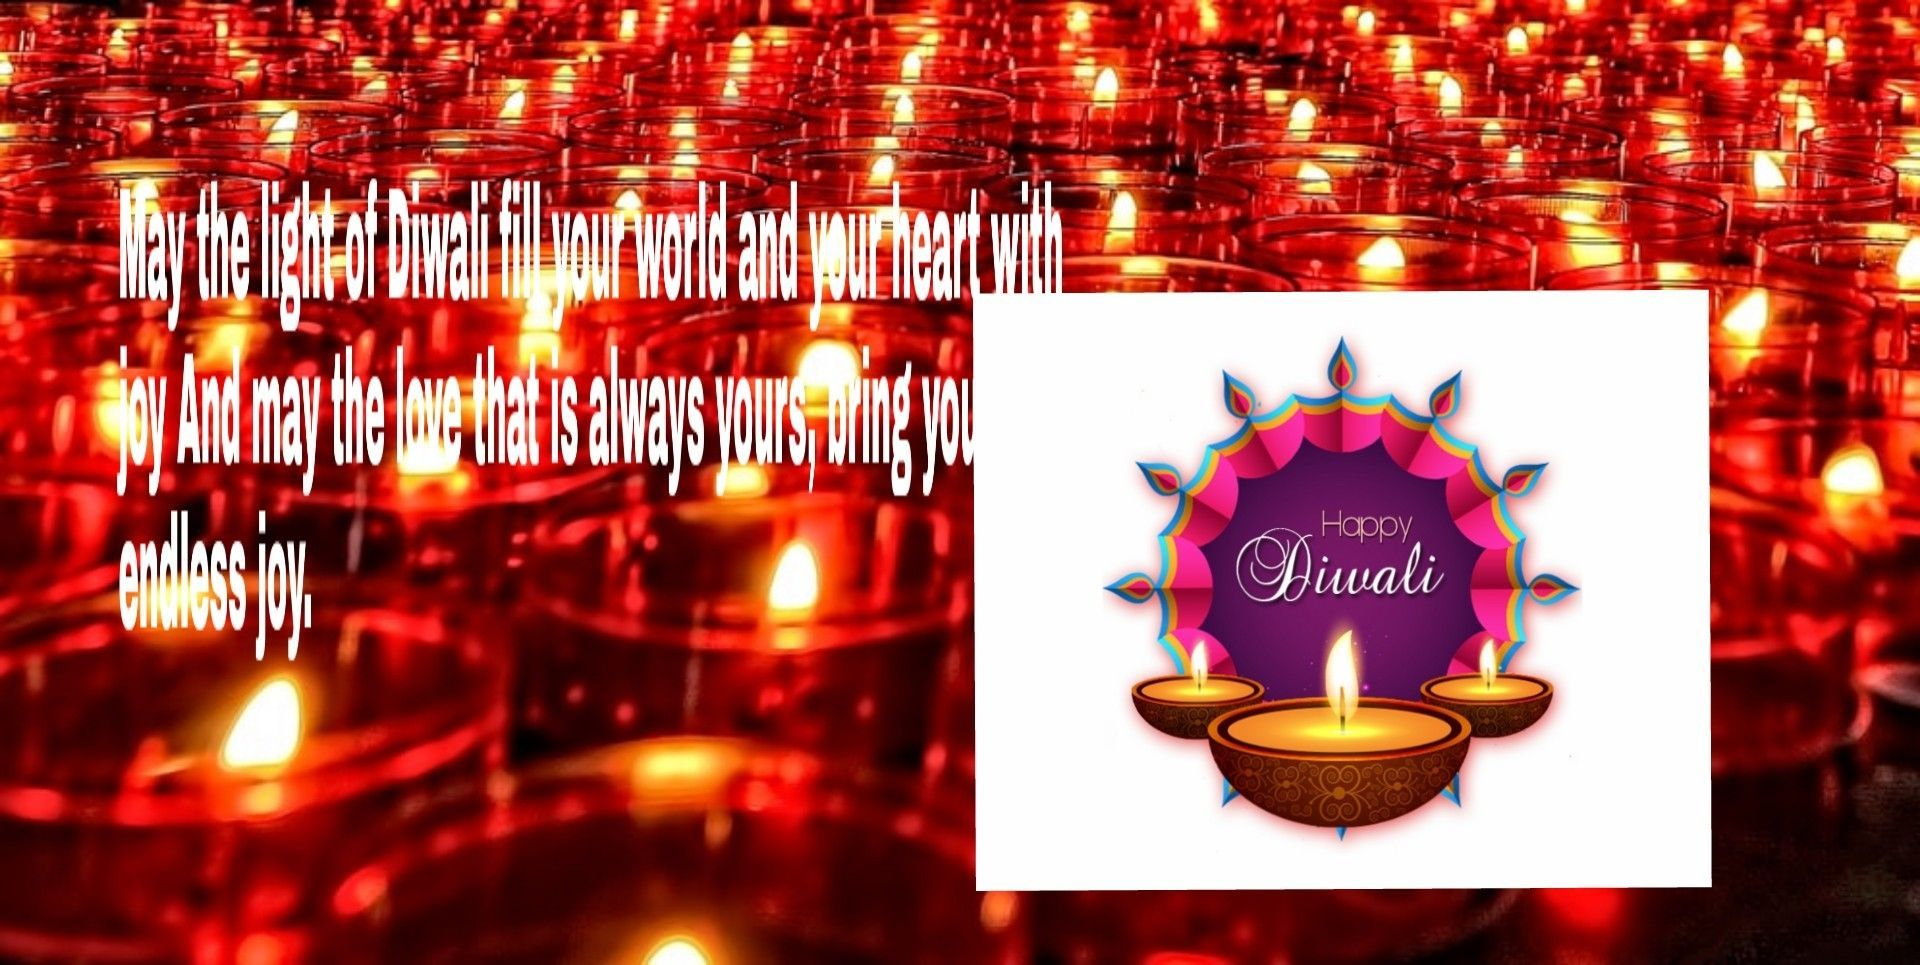 Happy Diwali 2019: Messages, Wishes, Greeting Cards, Rangoli Designs, Images, Whatsapp and Facebook #happydiwali Diwali images for WhatsApp and Facebook status, diwali status, happy diwali wishes, happy diwali 2019 messages, happy diwali, diwali2019, happy diwali 2019 wishes, happy diwali 2019 images, diwali wishes 2019, happy diwali images, diwali quotes, happy diwali images free download, diwali 2019 images free downlod, diwali festival, diwali rangoli designs, rangoli designs, Diwali WhatsApp #rangolidesignsdiwali